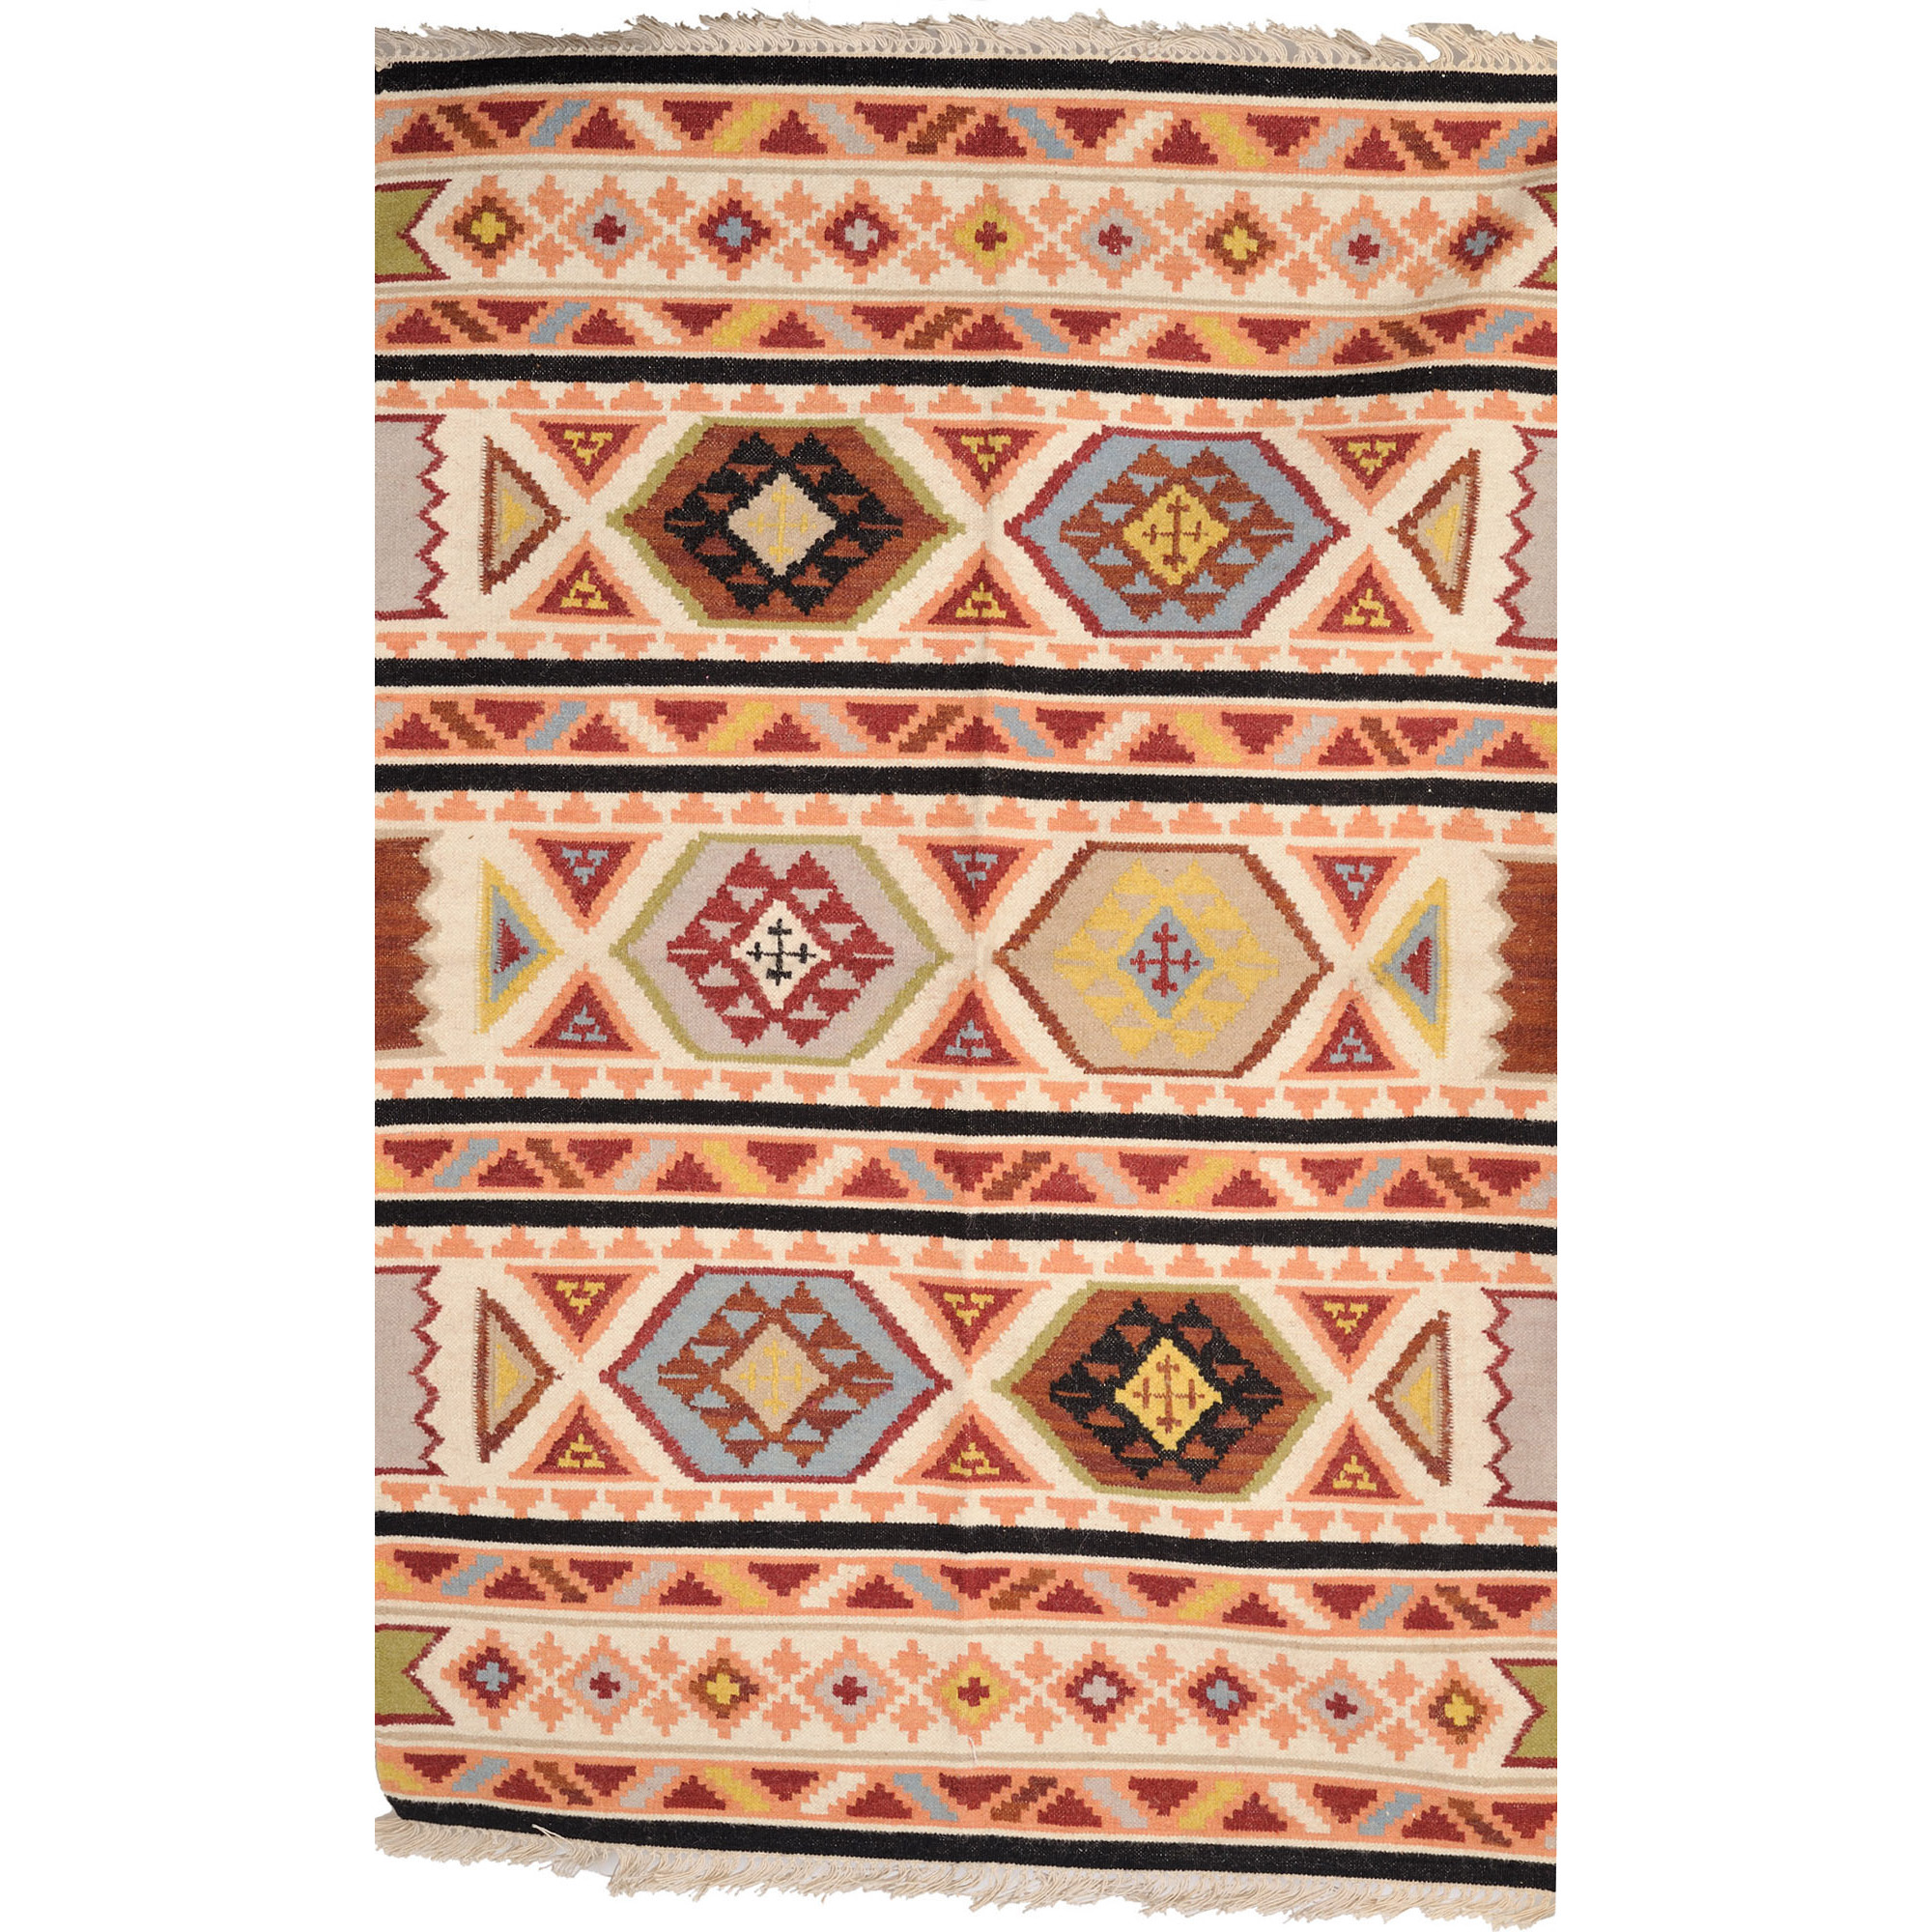 Ivory Handloom Dhurrie from Sitapur with Woven Motifs in Multi-color Thread